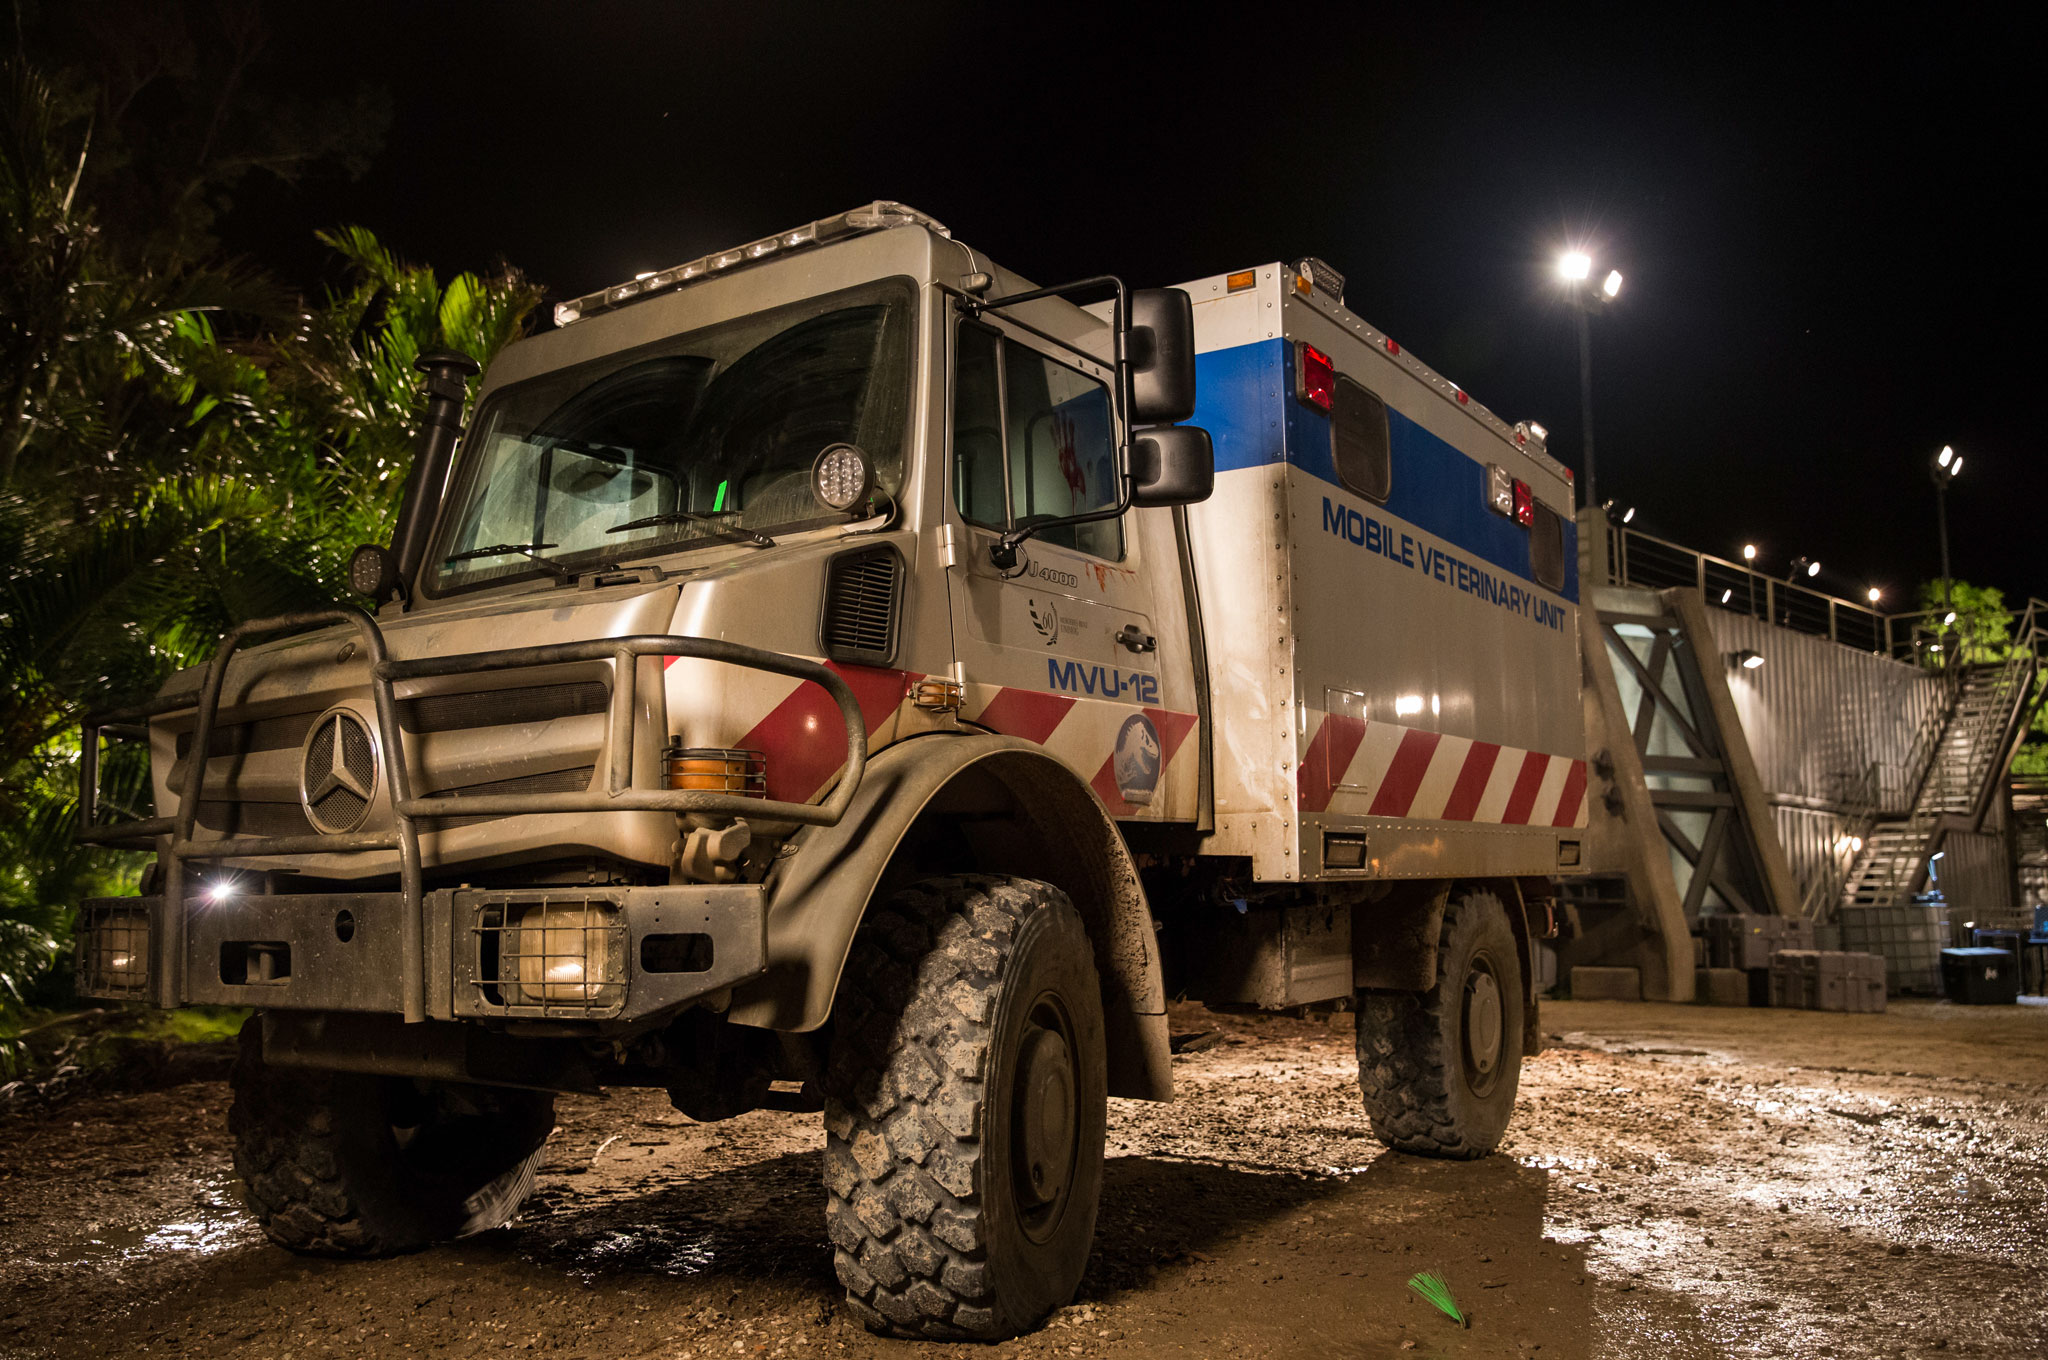 Mercedes Benz Gle Coupe G Class Unimog Featured In Jurassic World